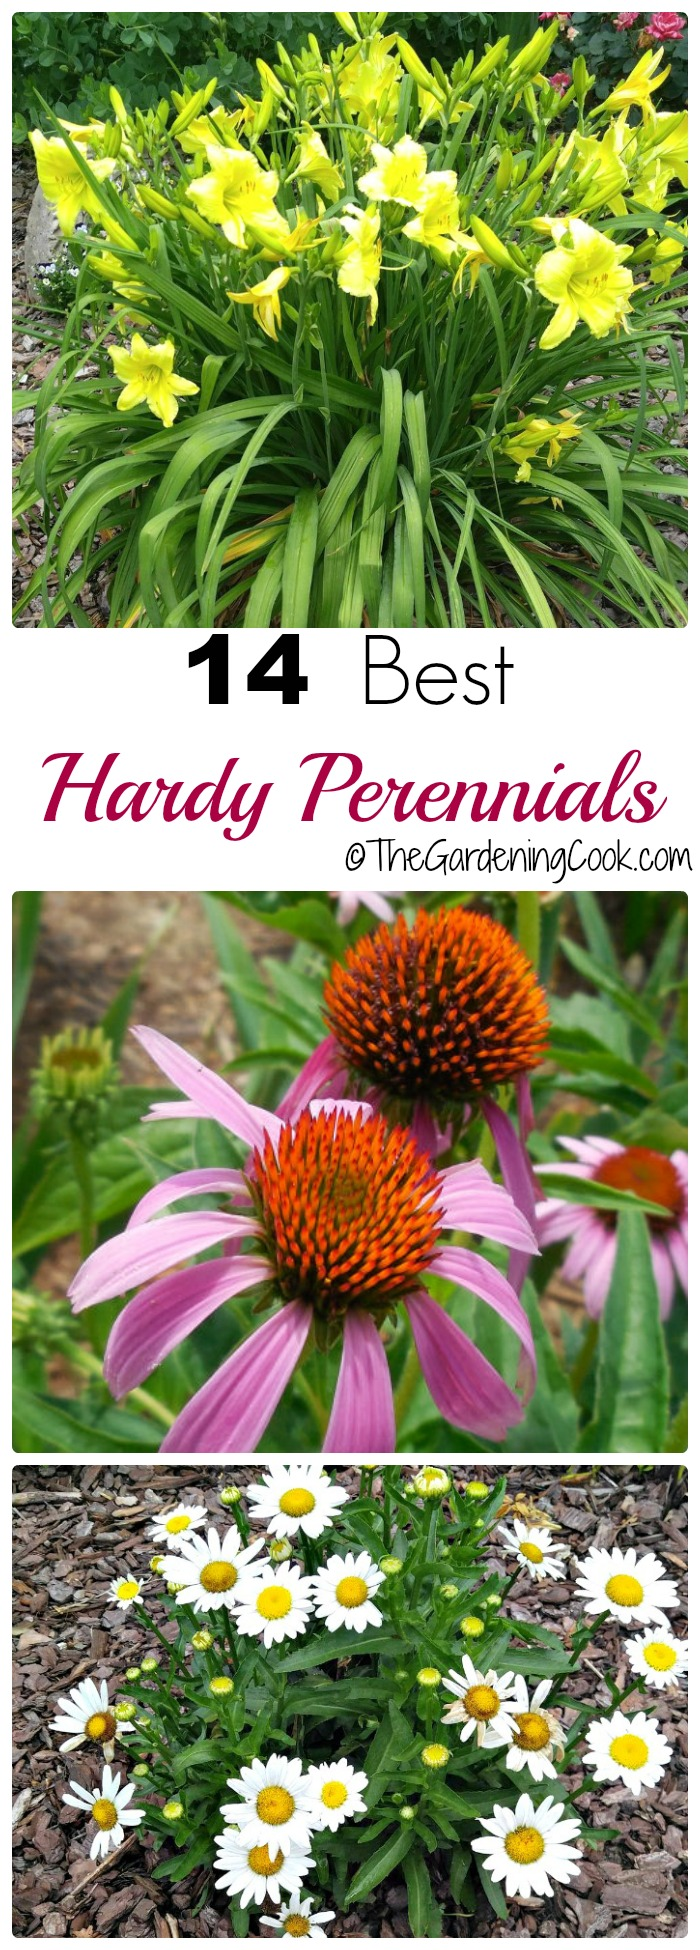 Hardy perennials are those that will take a freeze and come back for at least three seaons. These are my top 14 picks that will almost all grow from Maine into the deep South. thegardeningcook.com